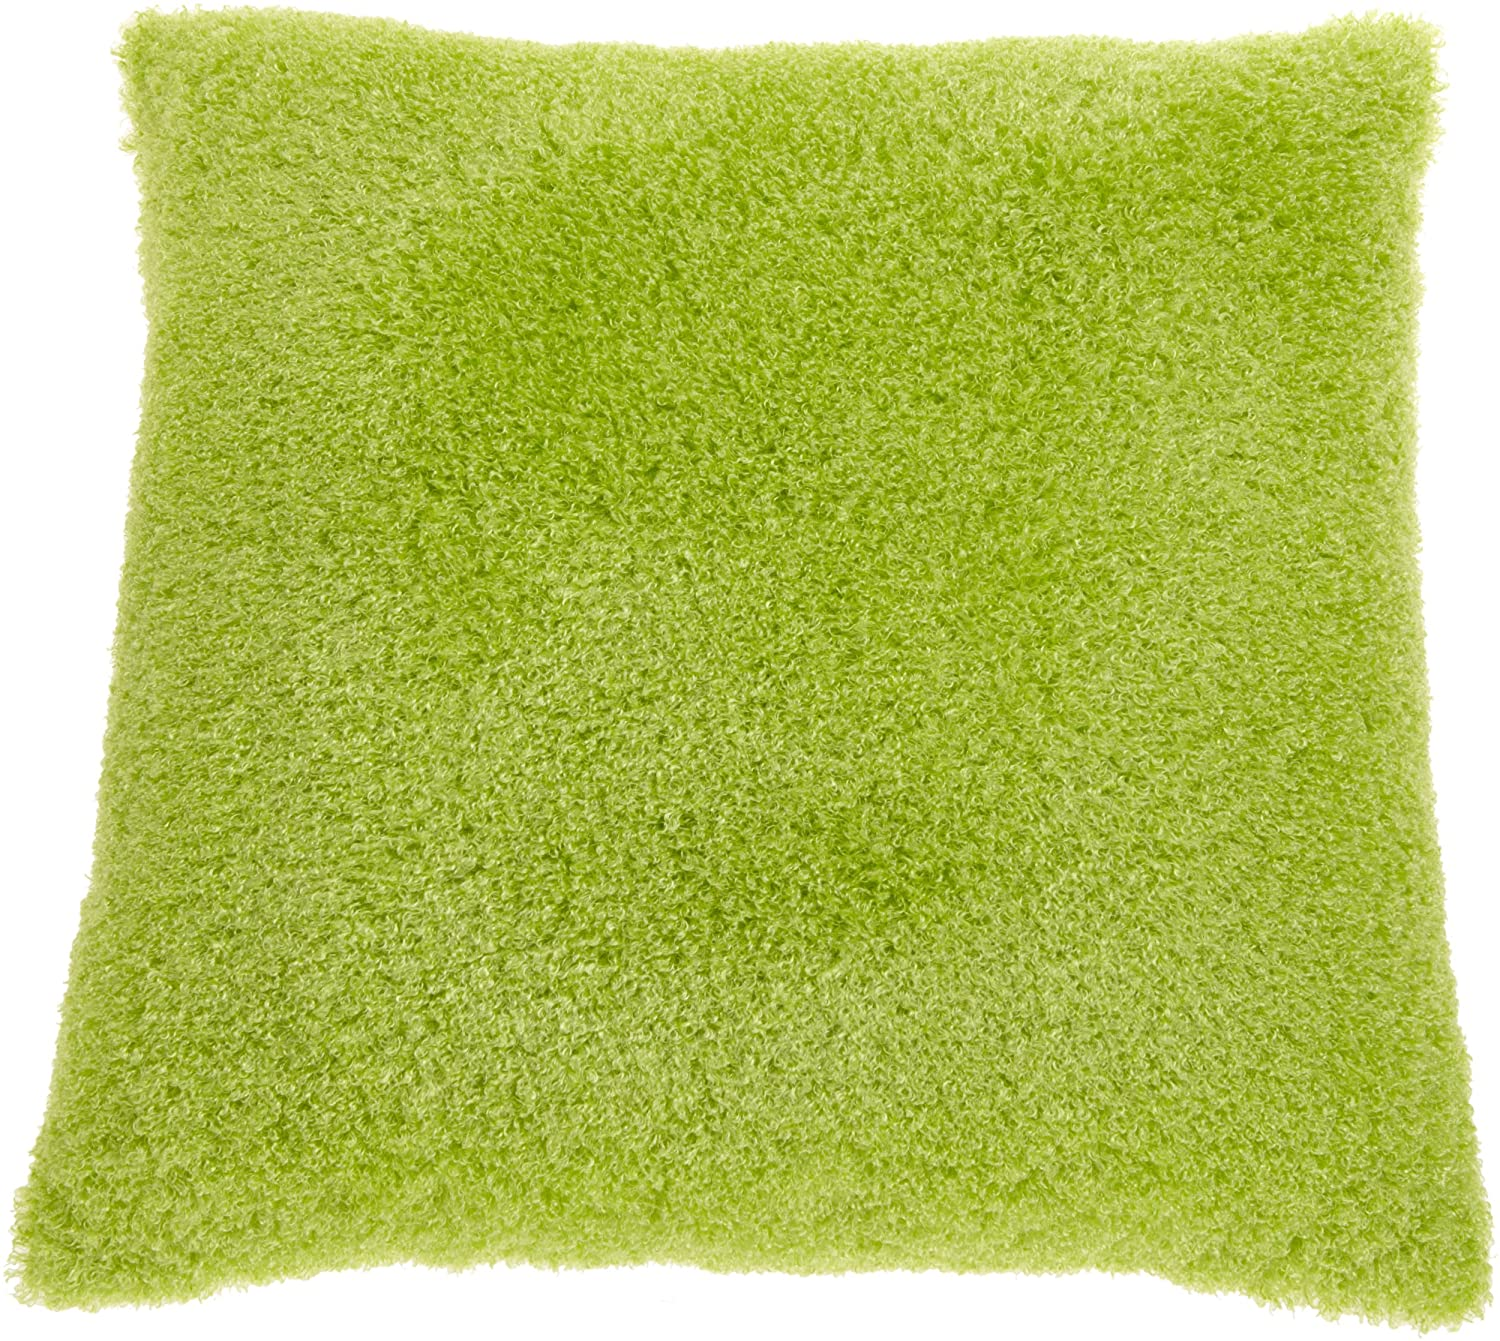 lime green chair pads standing workstation decor cushions for anywhere